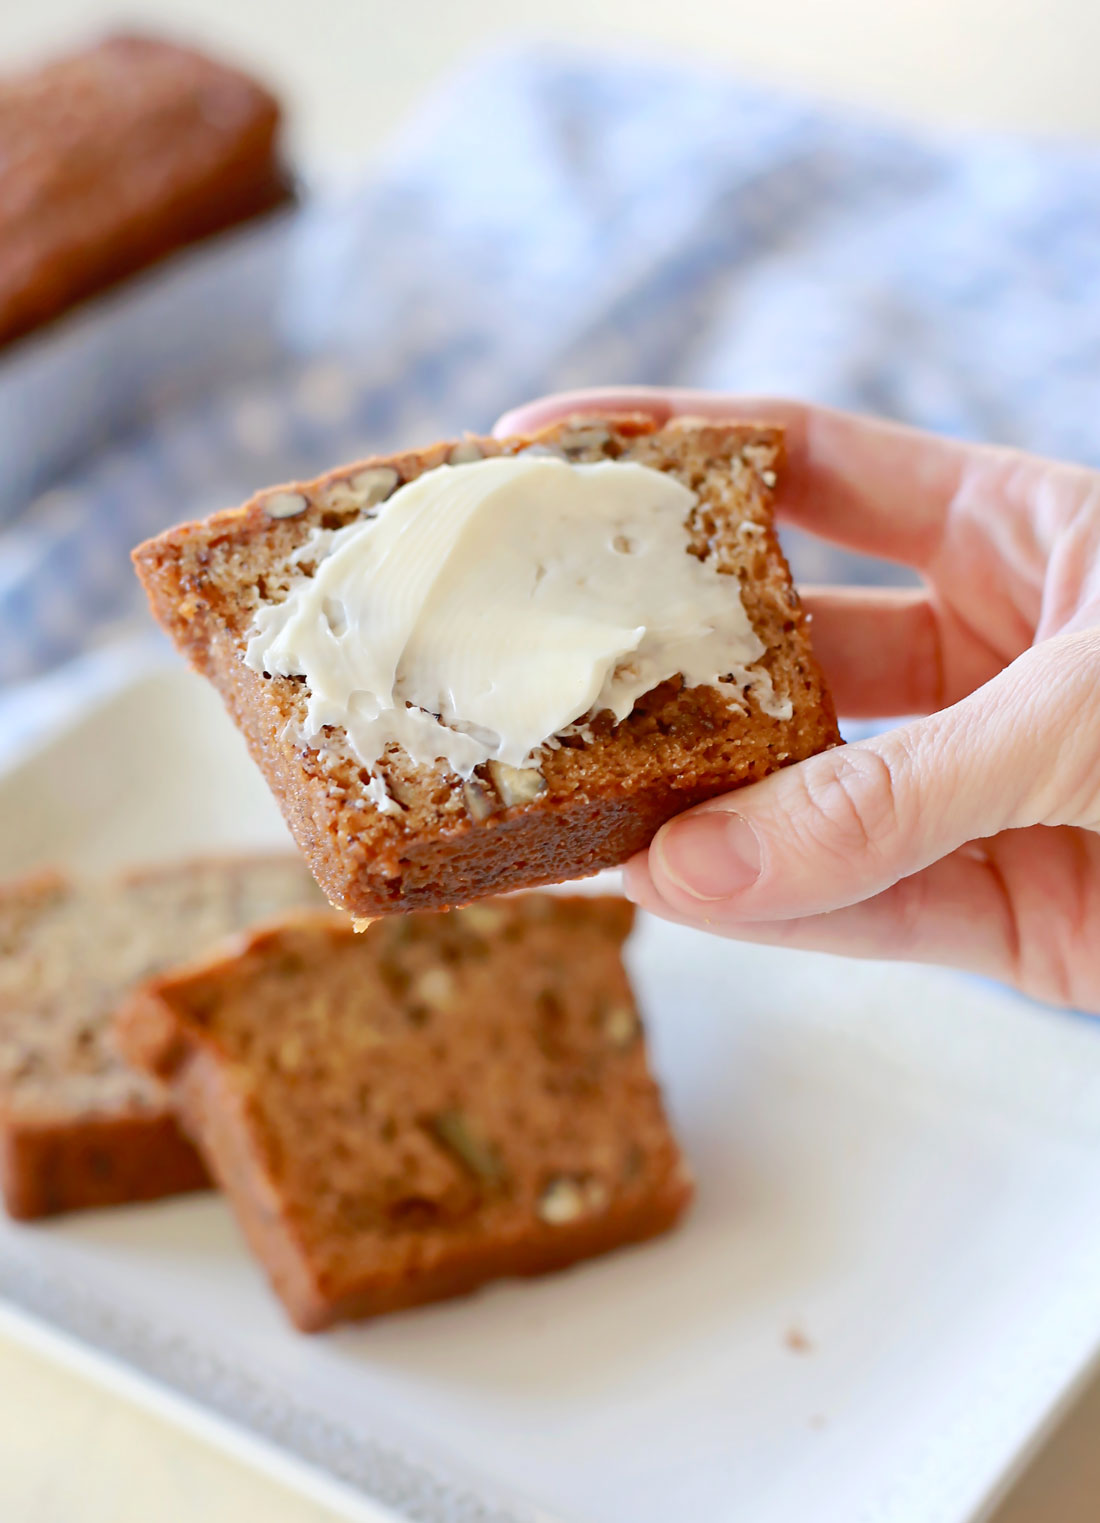 Best banana nut bread recipe ever of all time!